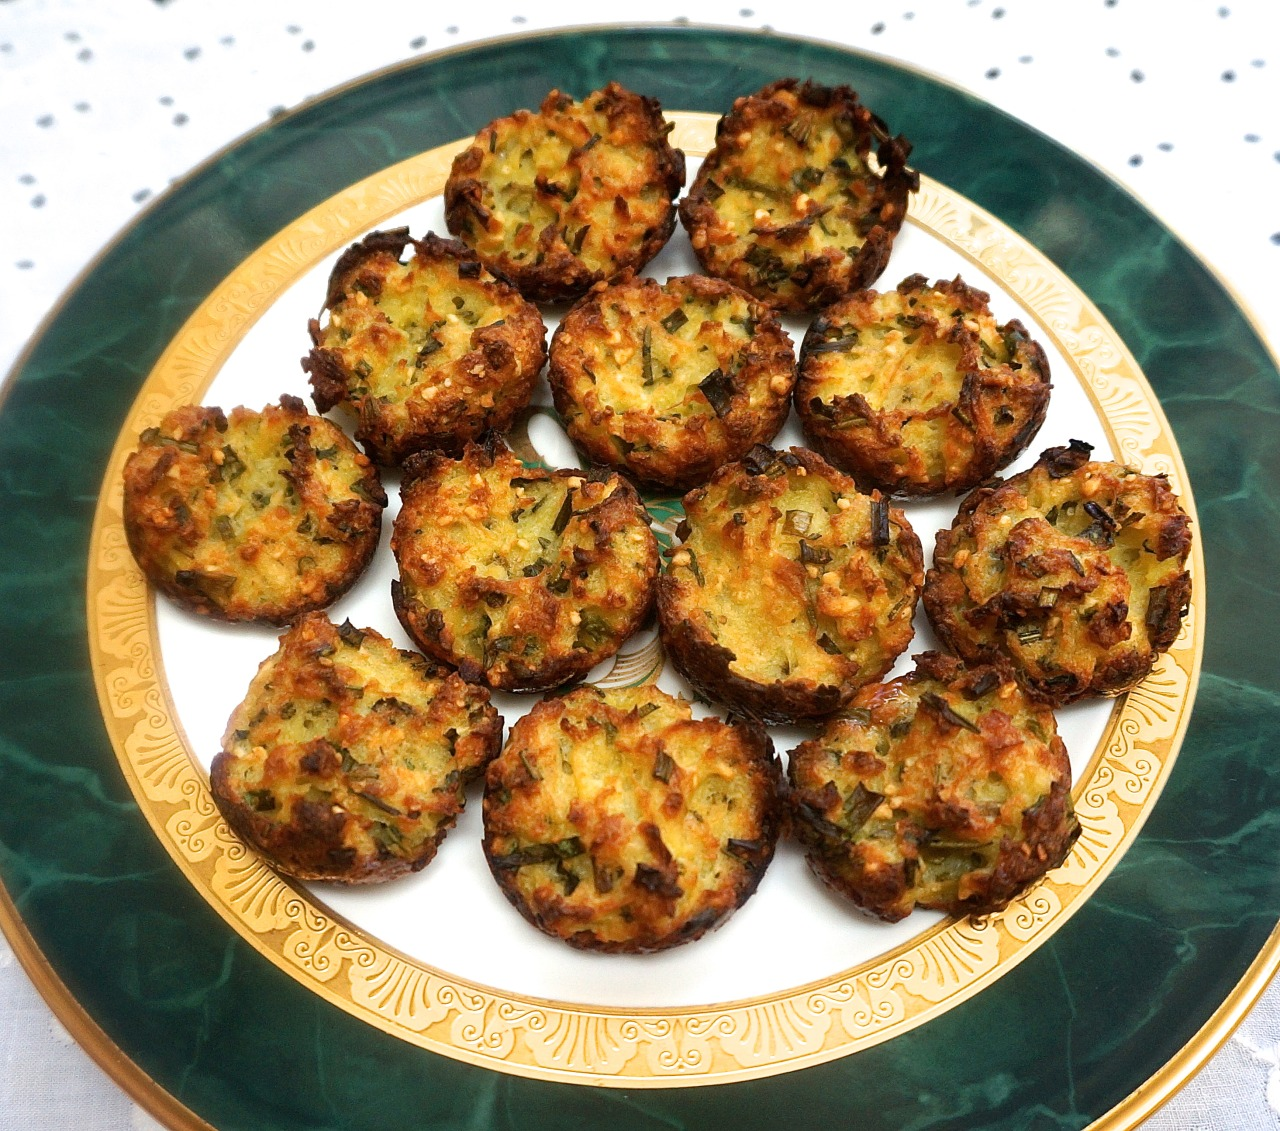 Need a quick nosh during Passover?   These crispy potato bites do the trick. I haven't met anyone who doesn't like them. In fact they remind me of franks-in-blankets, the kind of tidbit people don't want to admit they love, but they actually love them so much they eat more of them than they would ever guess.    I make these potato bites ahead and reheat them when needed (defrosted, 400 degree preheated oven for about 8-10 minutes) — although I have seen members of my clan eat them cold, saving me the trouble of washing a baking sheet.     They're not just for Passover, btw. I serve them for sports events (like Superbowl) and other times that I've got a small crowd coming over.                         Crispy Potato Bites           12 ounces Yukon Gold potatoes, peeled and cut into chunks      1/4 cup chopped fresh chives     1 tablespoon chopped fresh rosemary     1 large egg     2 tablespoons vegetable oil     2 tablespoons matzo meal     1/2 teaspoon Passover baking powder     salt and freshly ground black pepper to taste           Preheat oven to 400 degrees. Lightly grease 16-18 mini muffin tin cups (or use cooking spray). Shred the potatoes in a food processor, scoop the shreds, replace the shredding disk with the S-blade and return the shredded potatoes to the workbowl. Chop the potatoes until they are small pieces. Squeeze excess liquid out of the potatoes. Place the potatoes in a bowl. Add the chives, rosemary, egg, vegetable oil, matzo meal, baking powder and salt and pepper to taste. Mix the ingredients thoroughly to blend them completely. Spoon equal amounts of the potato mixture into the mini muffin cups. Bake for 25-30 minutes or until crispy and golden brown.             Makes 16-18